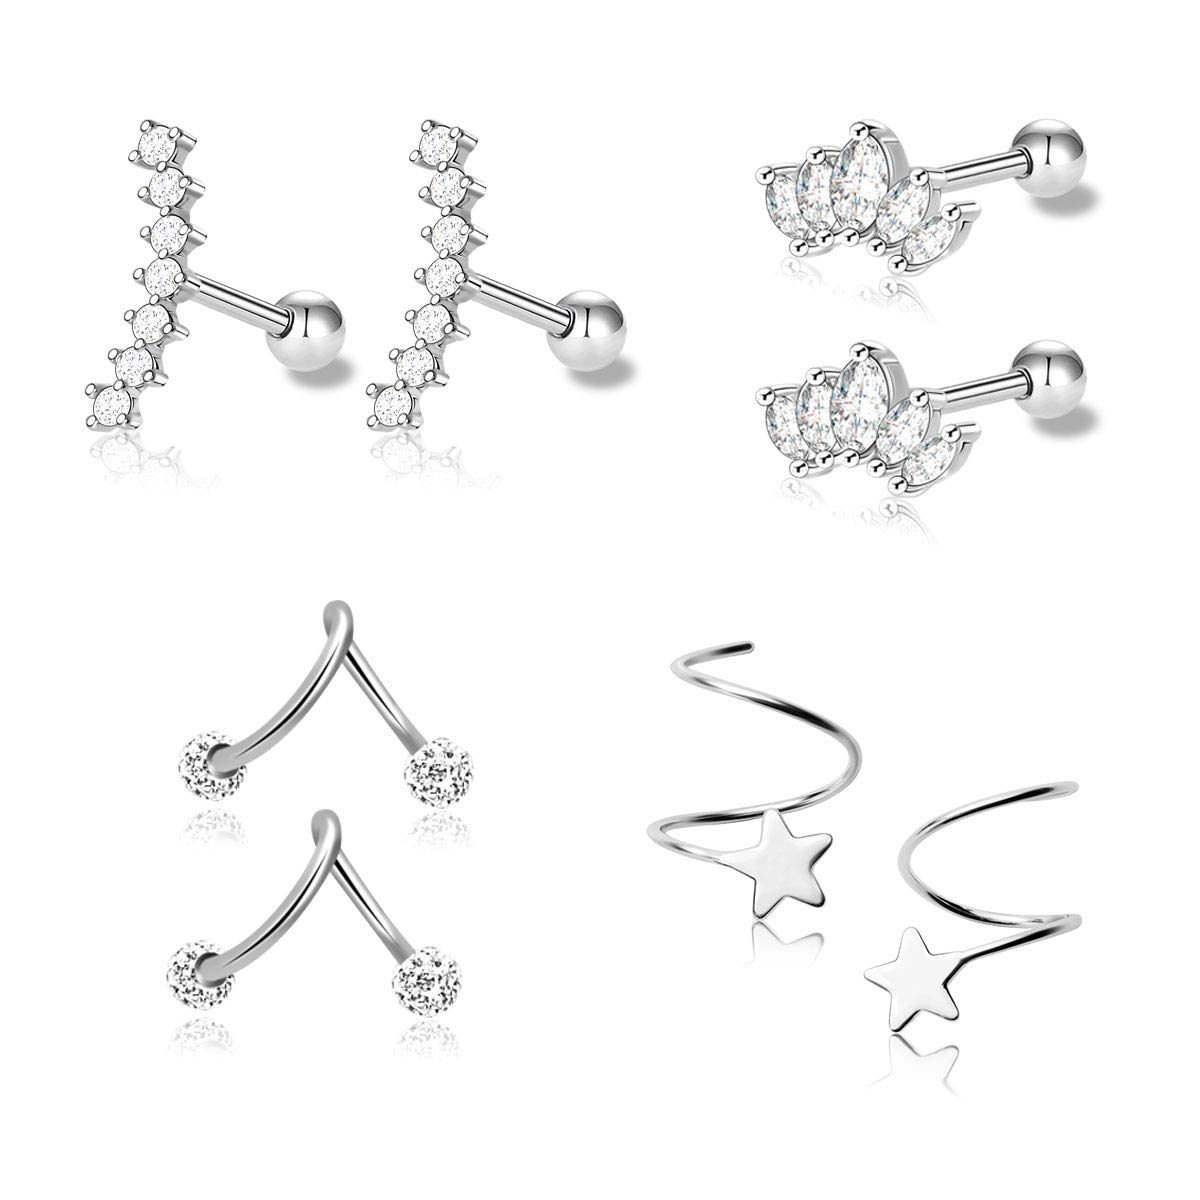 1-4 Pairs Stainless Steel Silver Ear Cartilage Earrings for Women Girls Tragus Helix Earring Cute Conch Flat Back Piercing Jewelry 16G (Style A) by CZCCZC